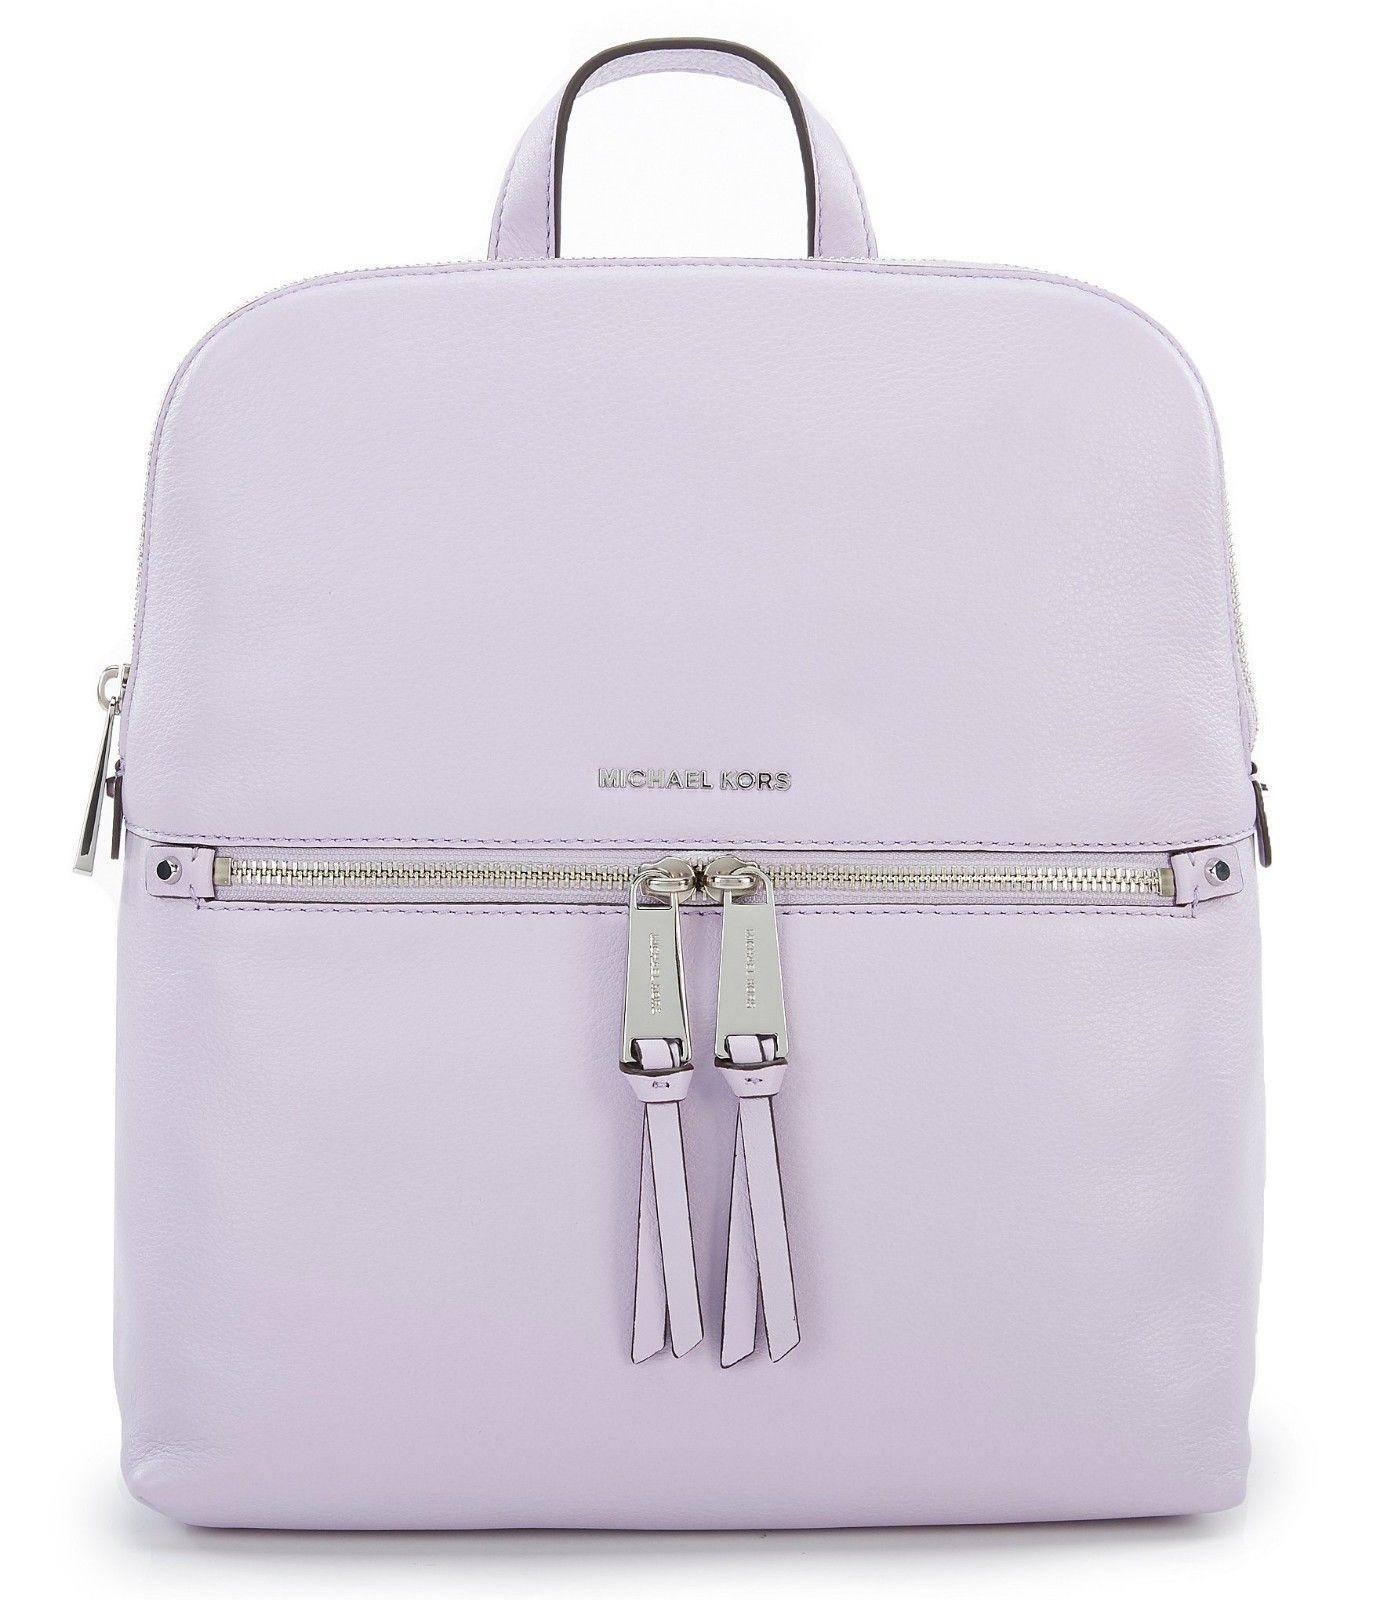 67aebba01713 promo code for michael kors backpack grey yellow a1619 70079